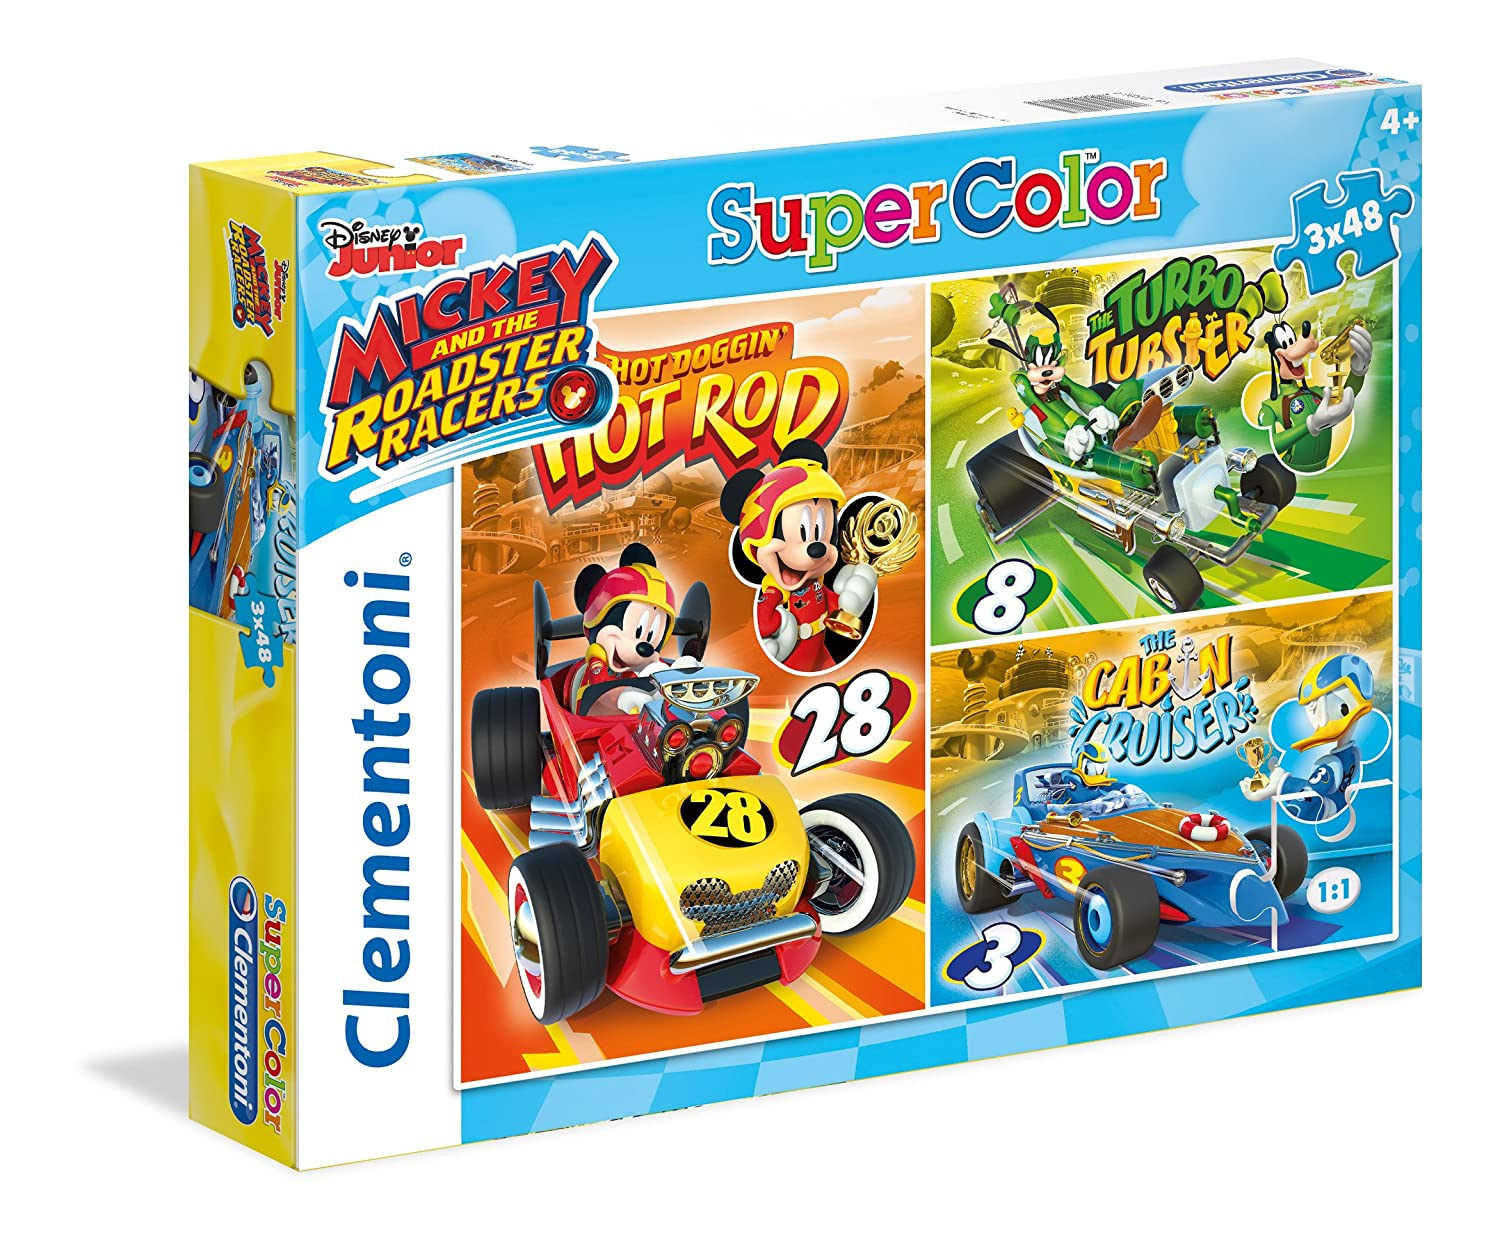 Clementoni - 25227 - Supercolor Puzzle - Mickey and The Roadster Racers - 3x 48Pièces - Disney